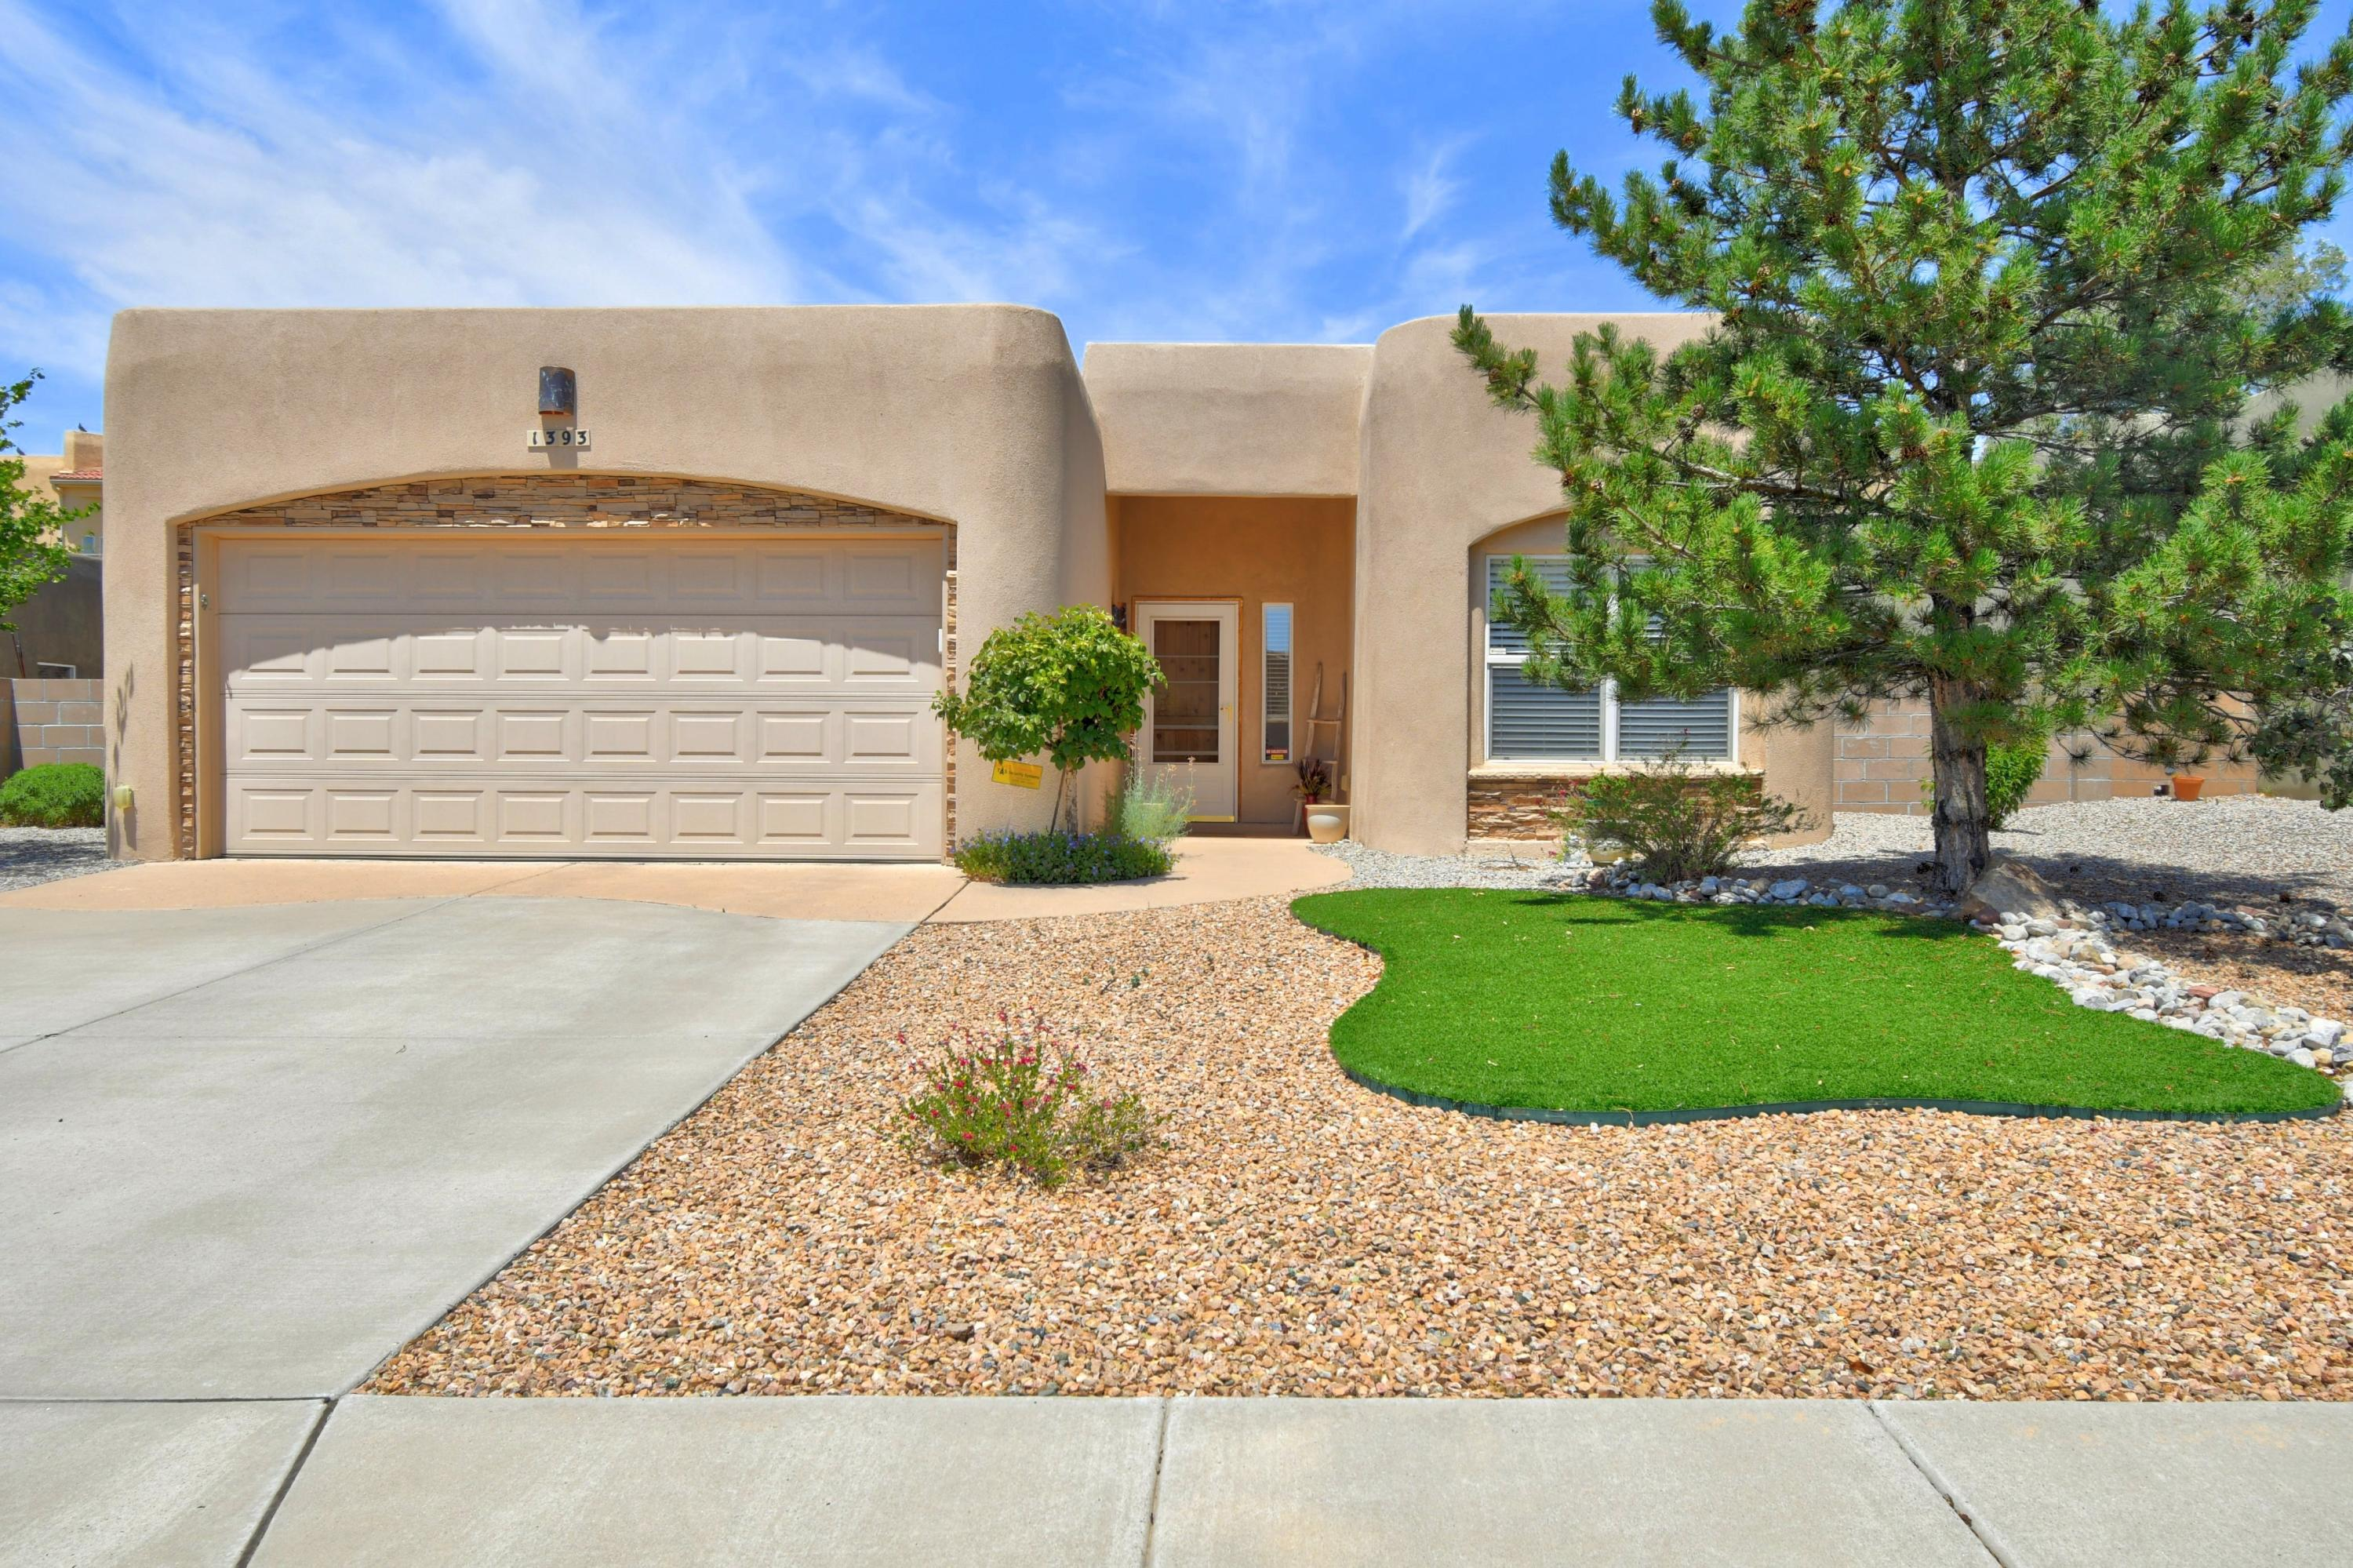 1393 TIFFANY Lane SE Property Photo - Rio Rancho, NM real estate listing